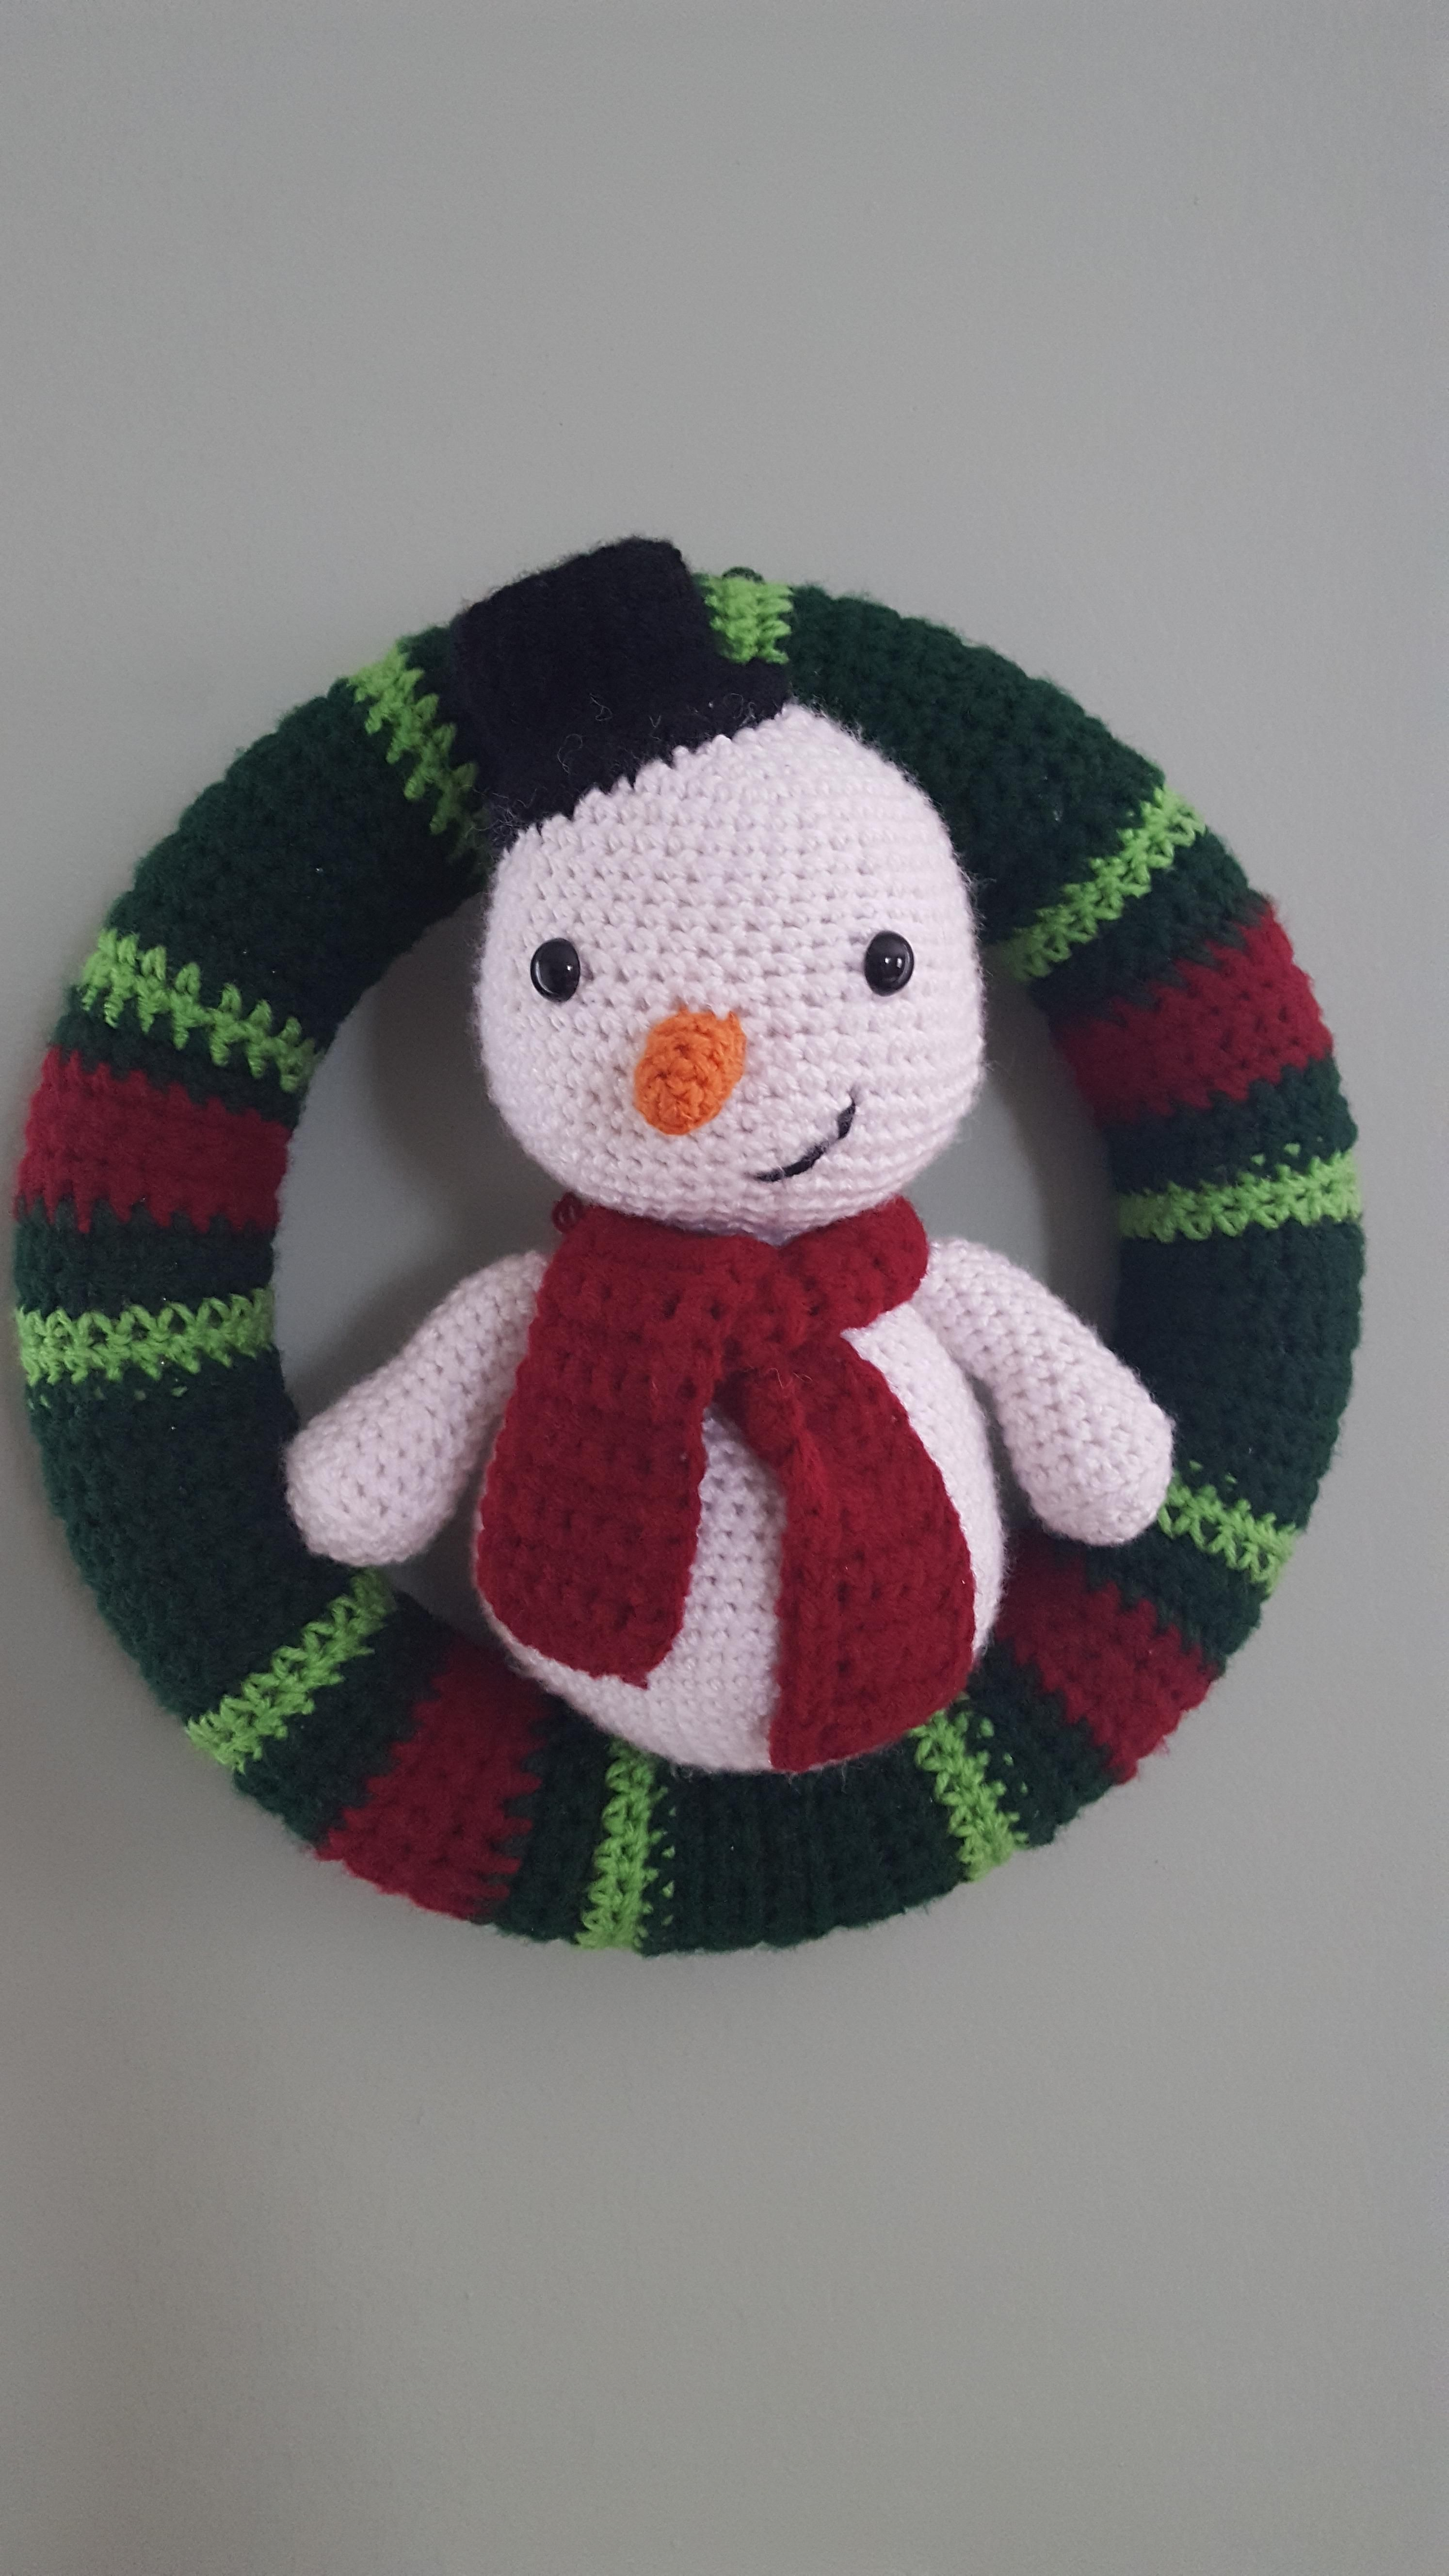 Made This For My Snowman Loving Mom And I M Super Happy With How It Turned Out Crochet Christmas Wreath Crochet Wreath Crochet Wreath Pattern